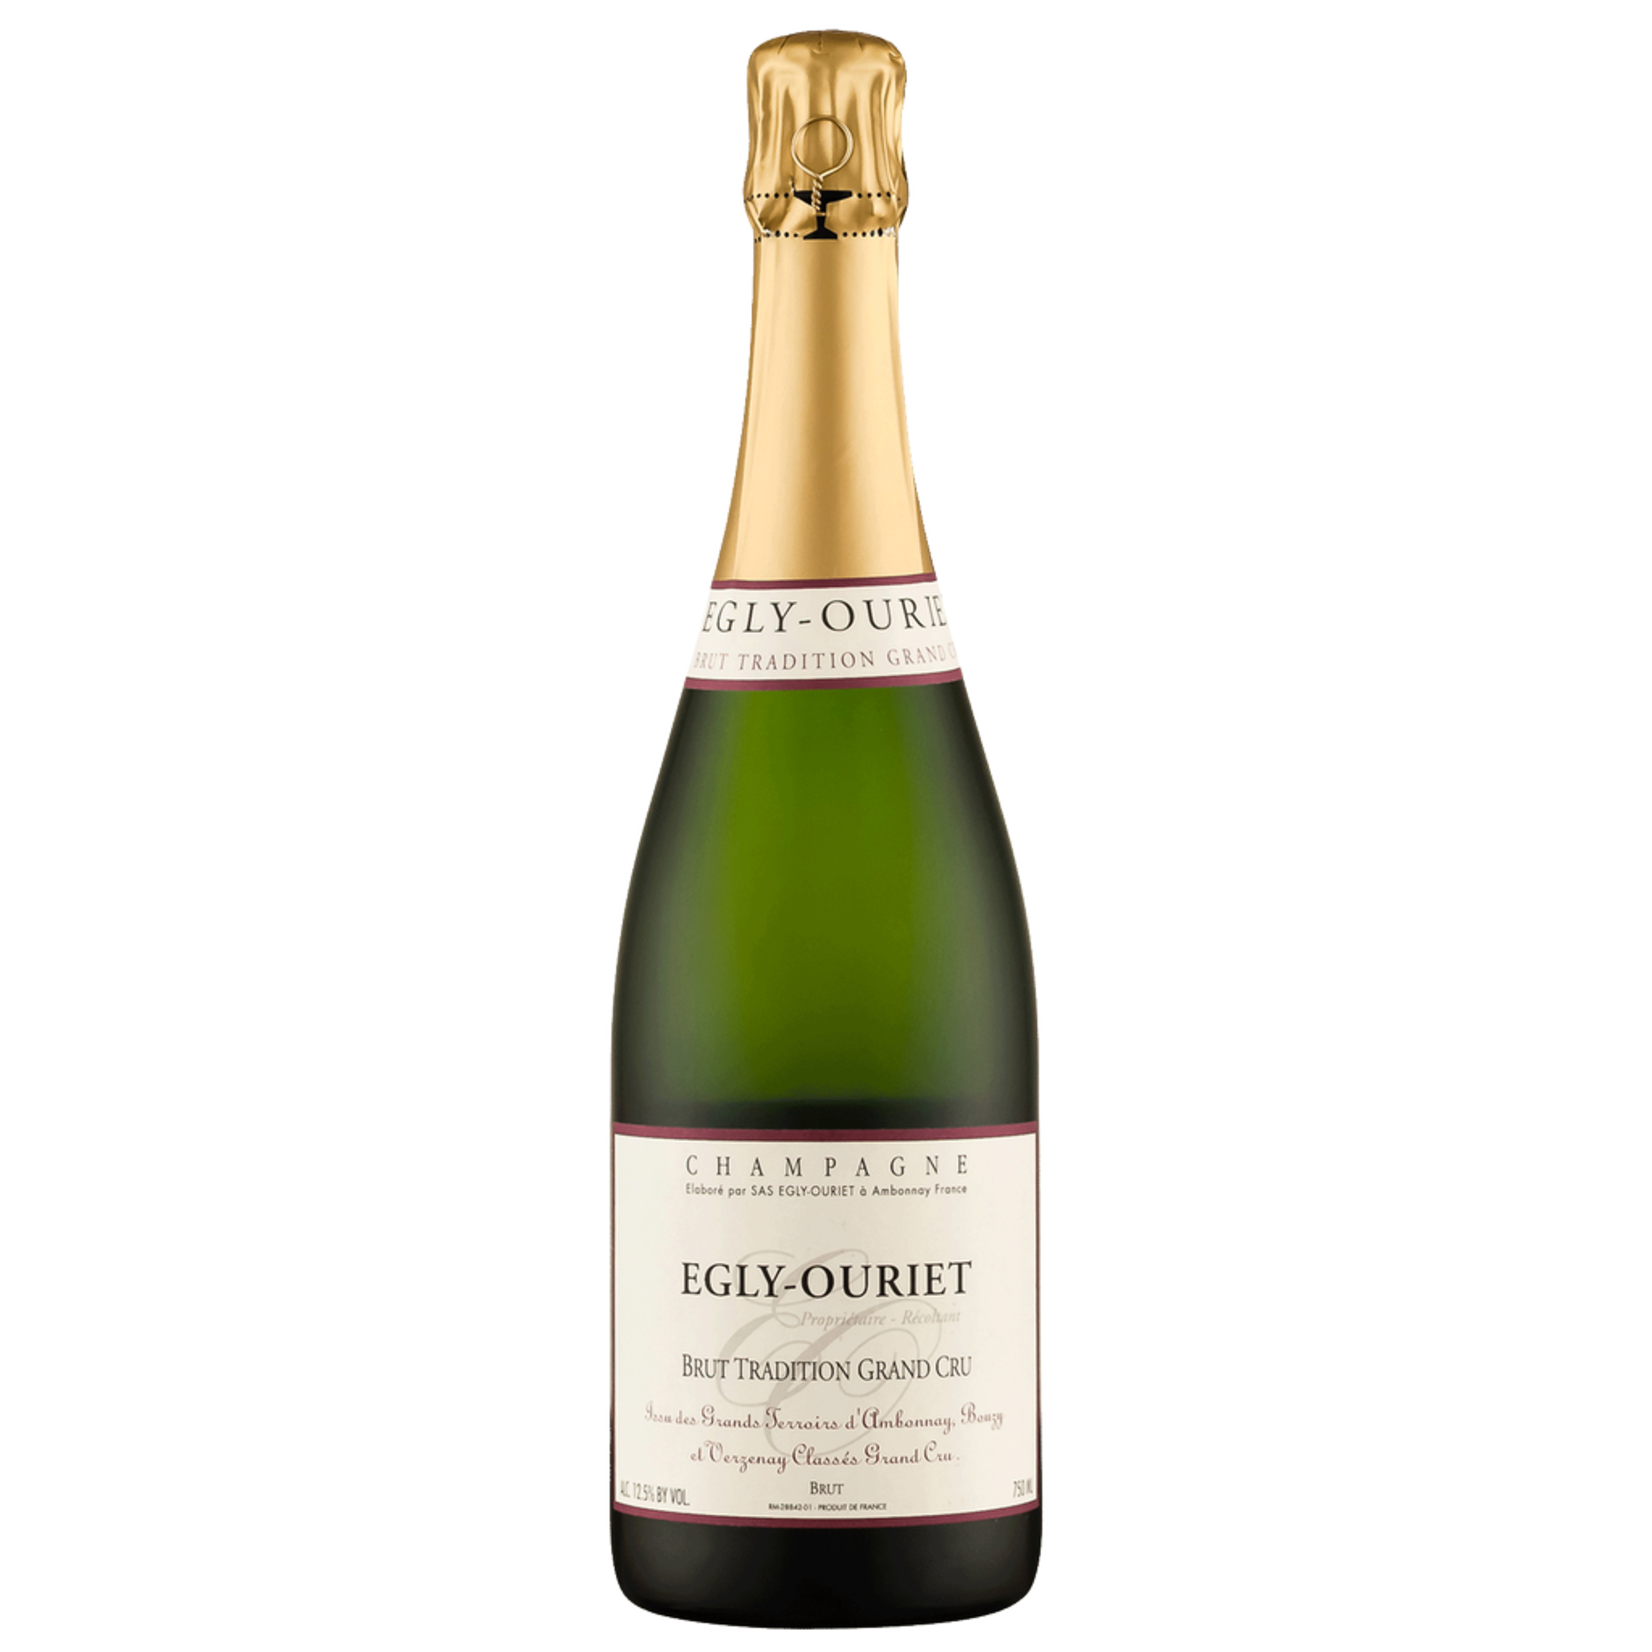 Sparkling Egly-Ouriet Champagne Grand Cru Brut Tradition NV